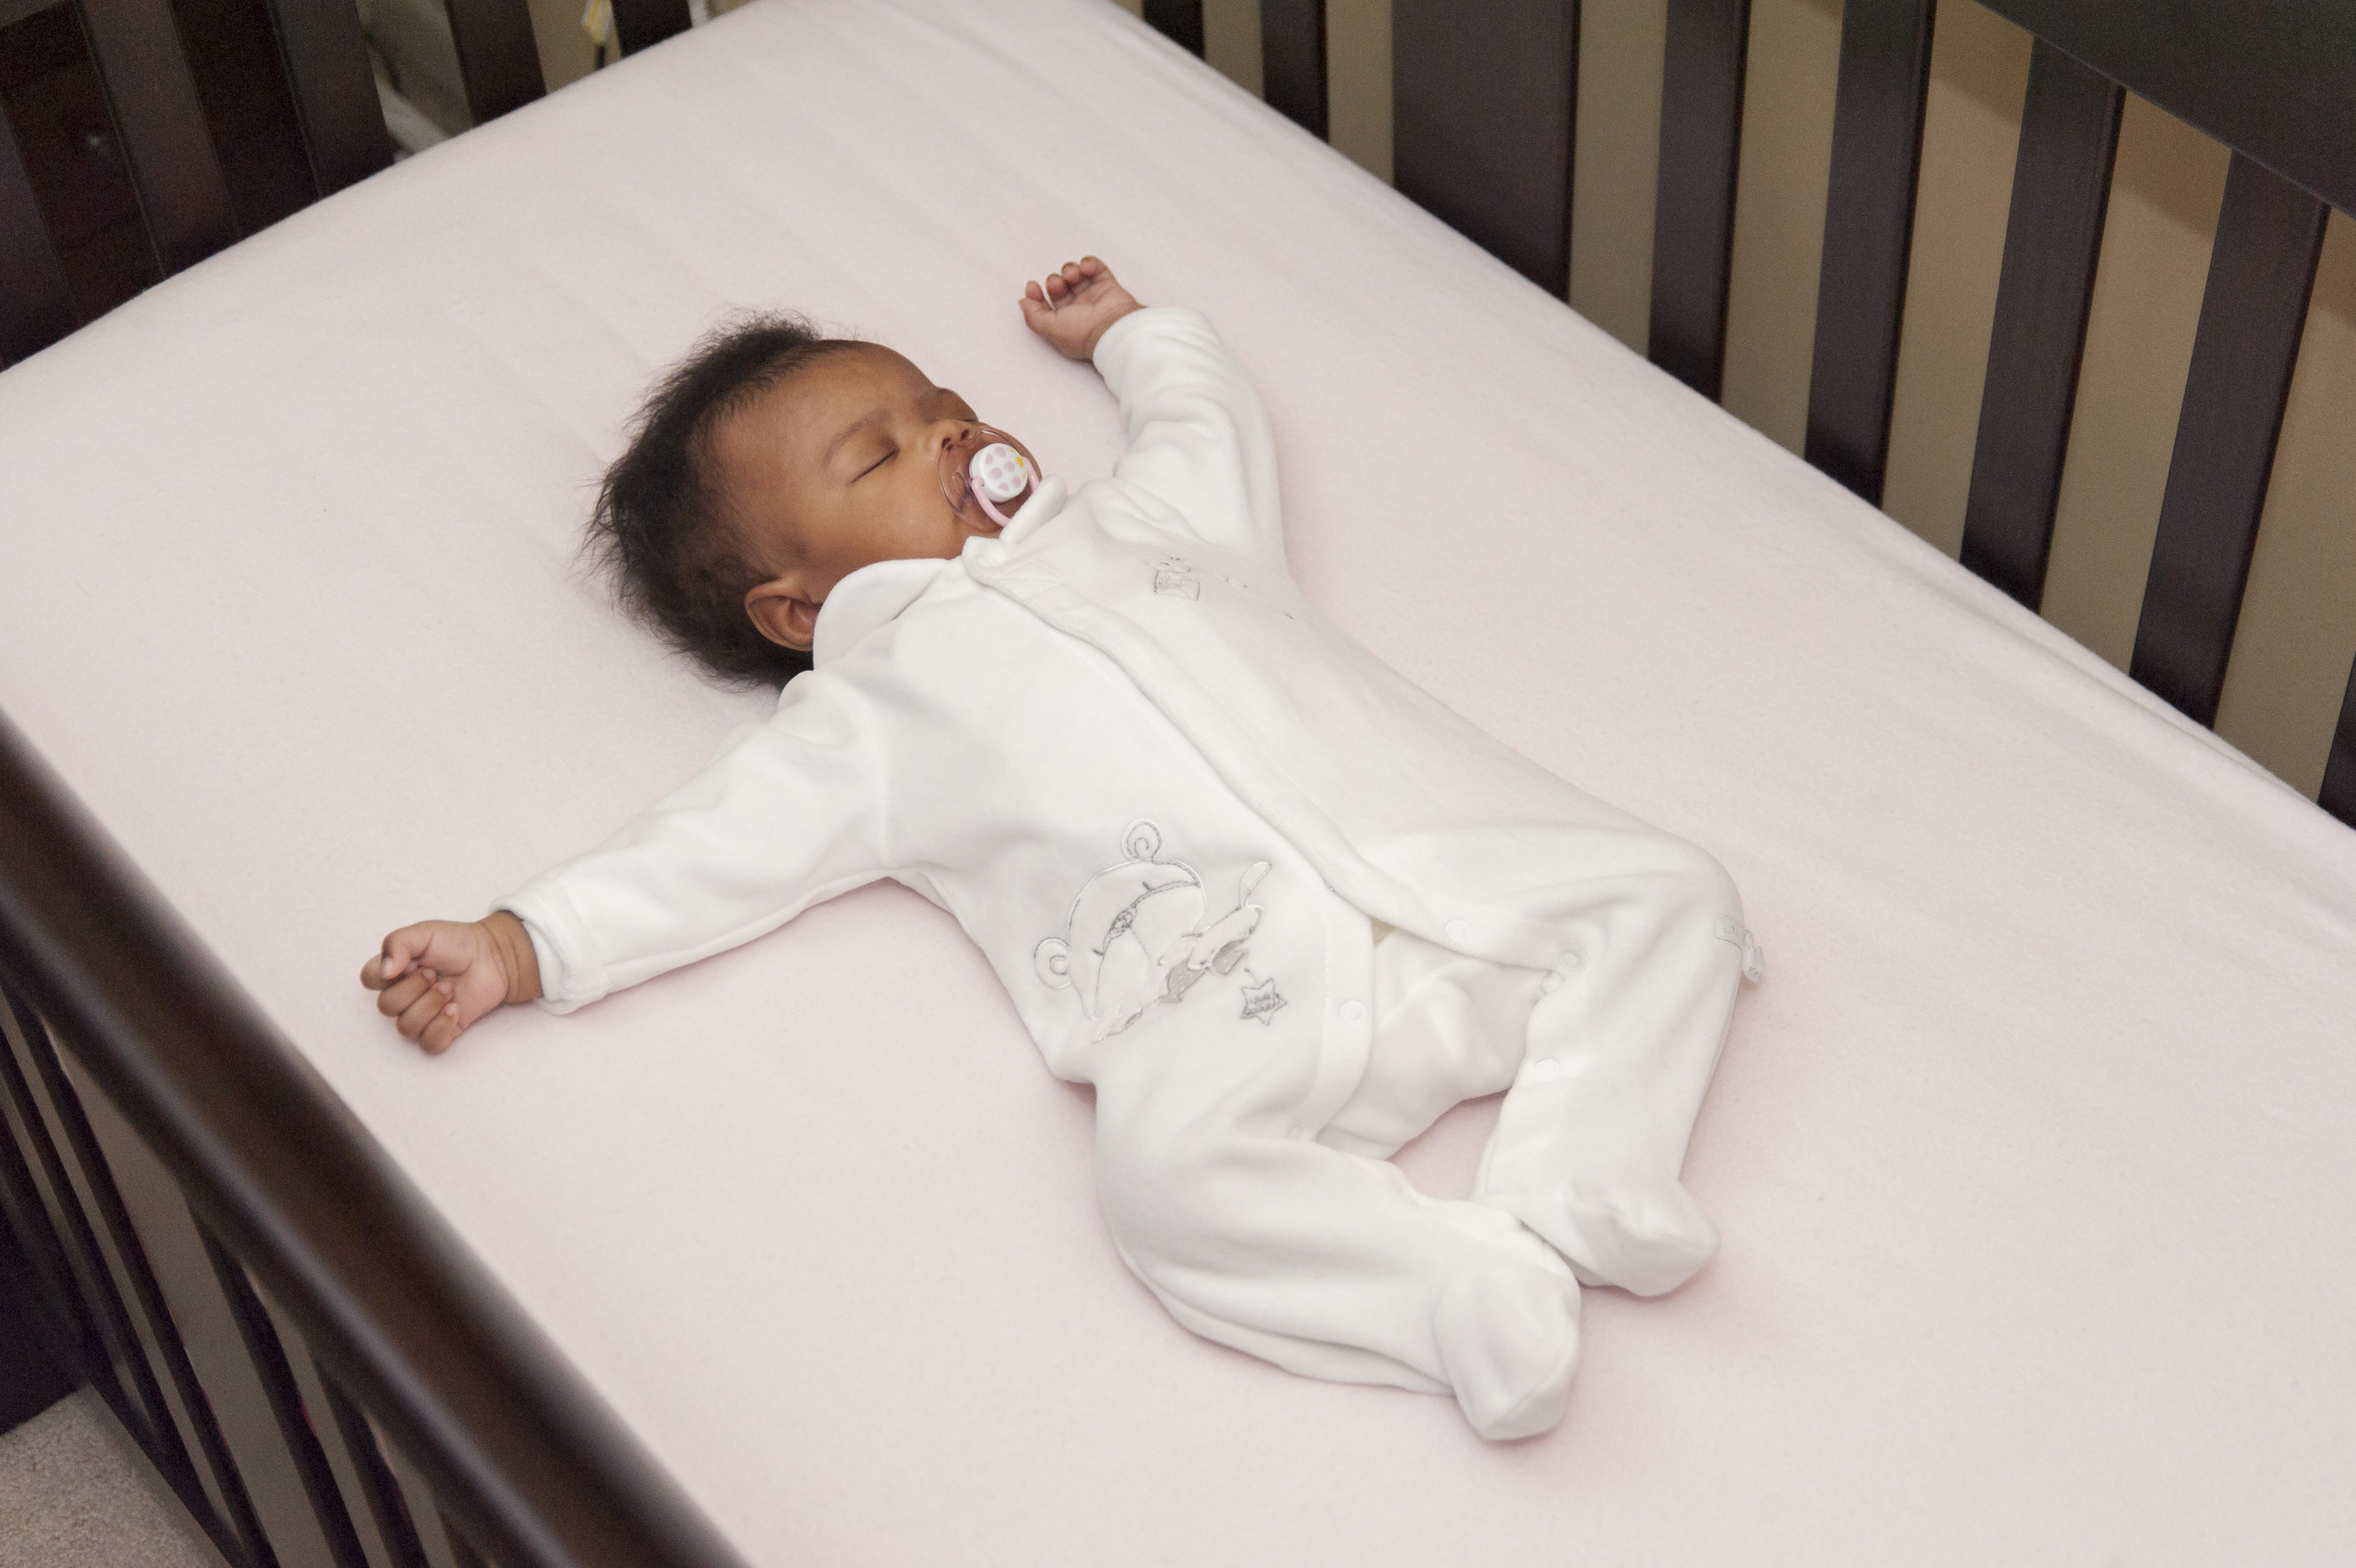 nichd-baby-crib-sleep-photo.jpg